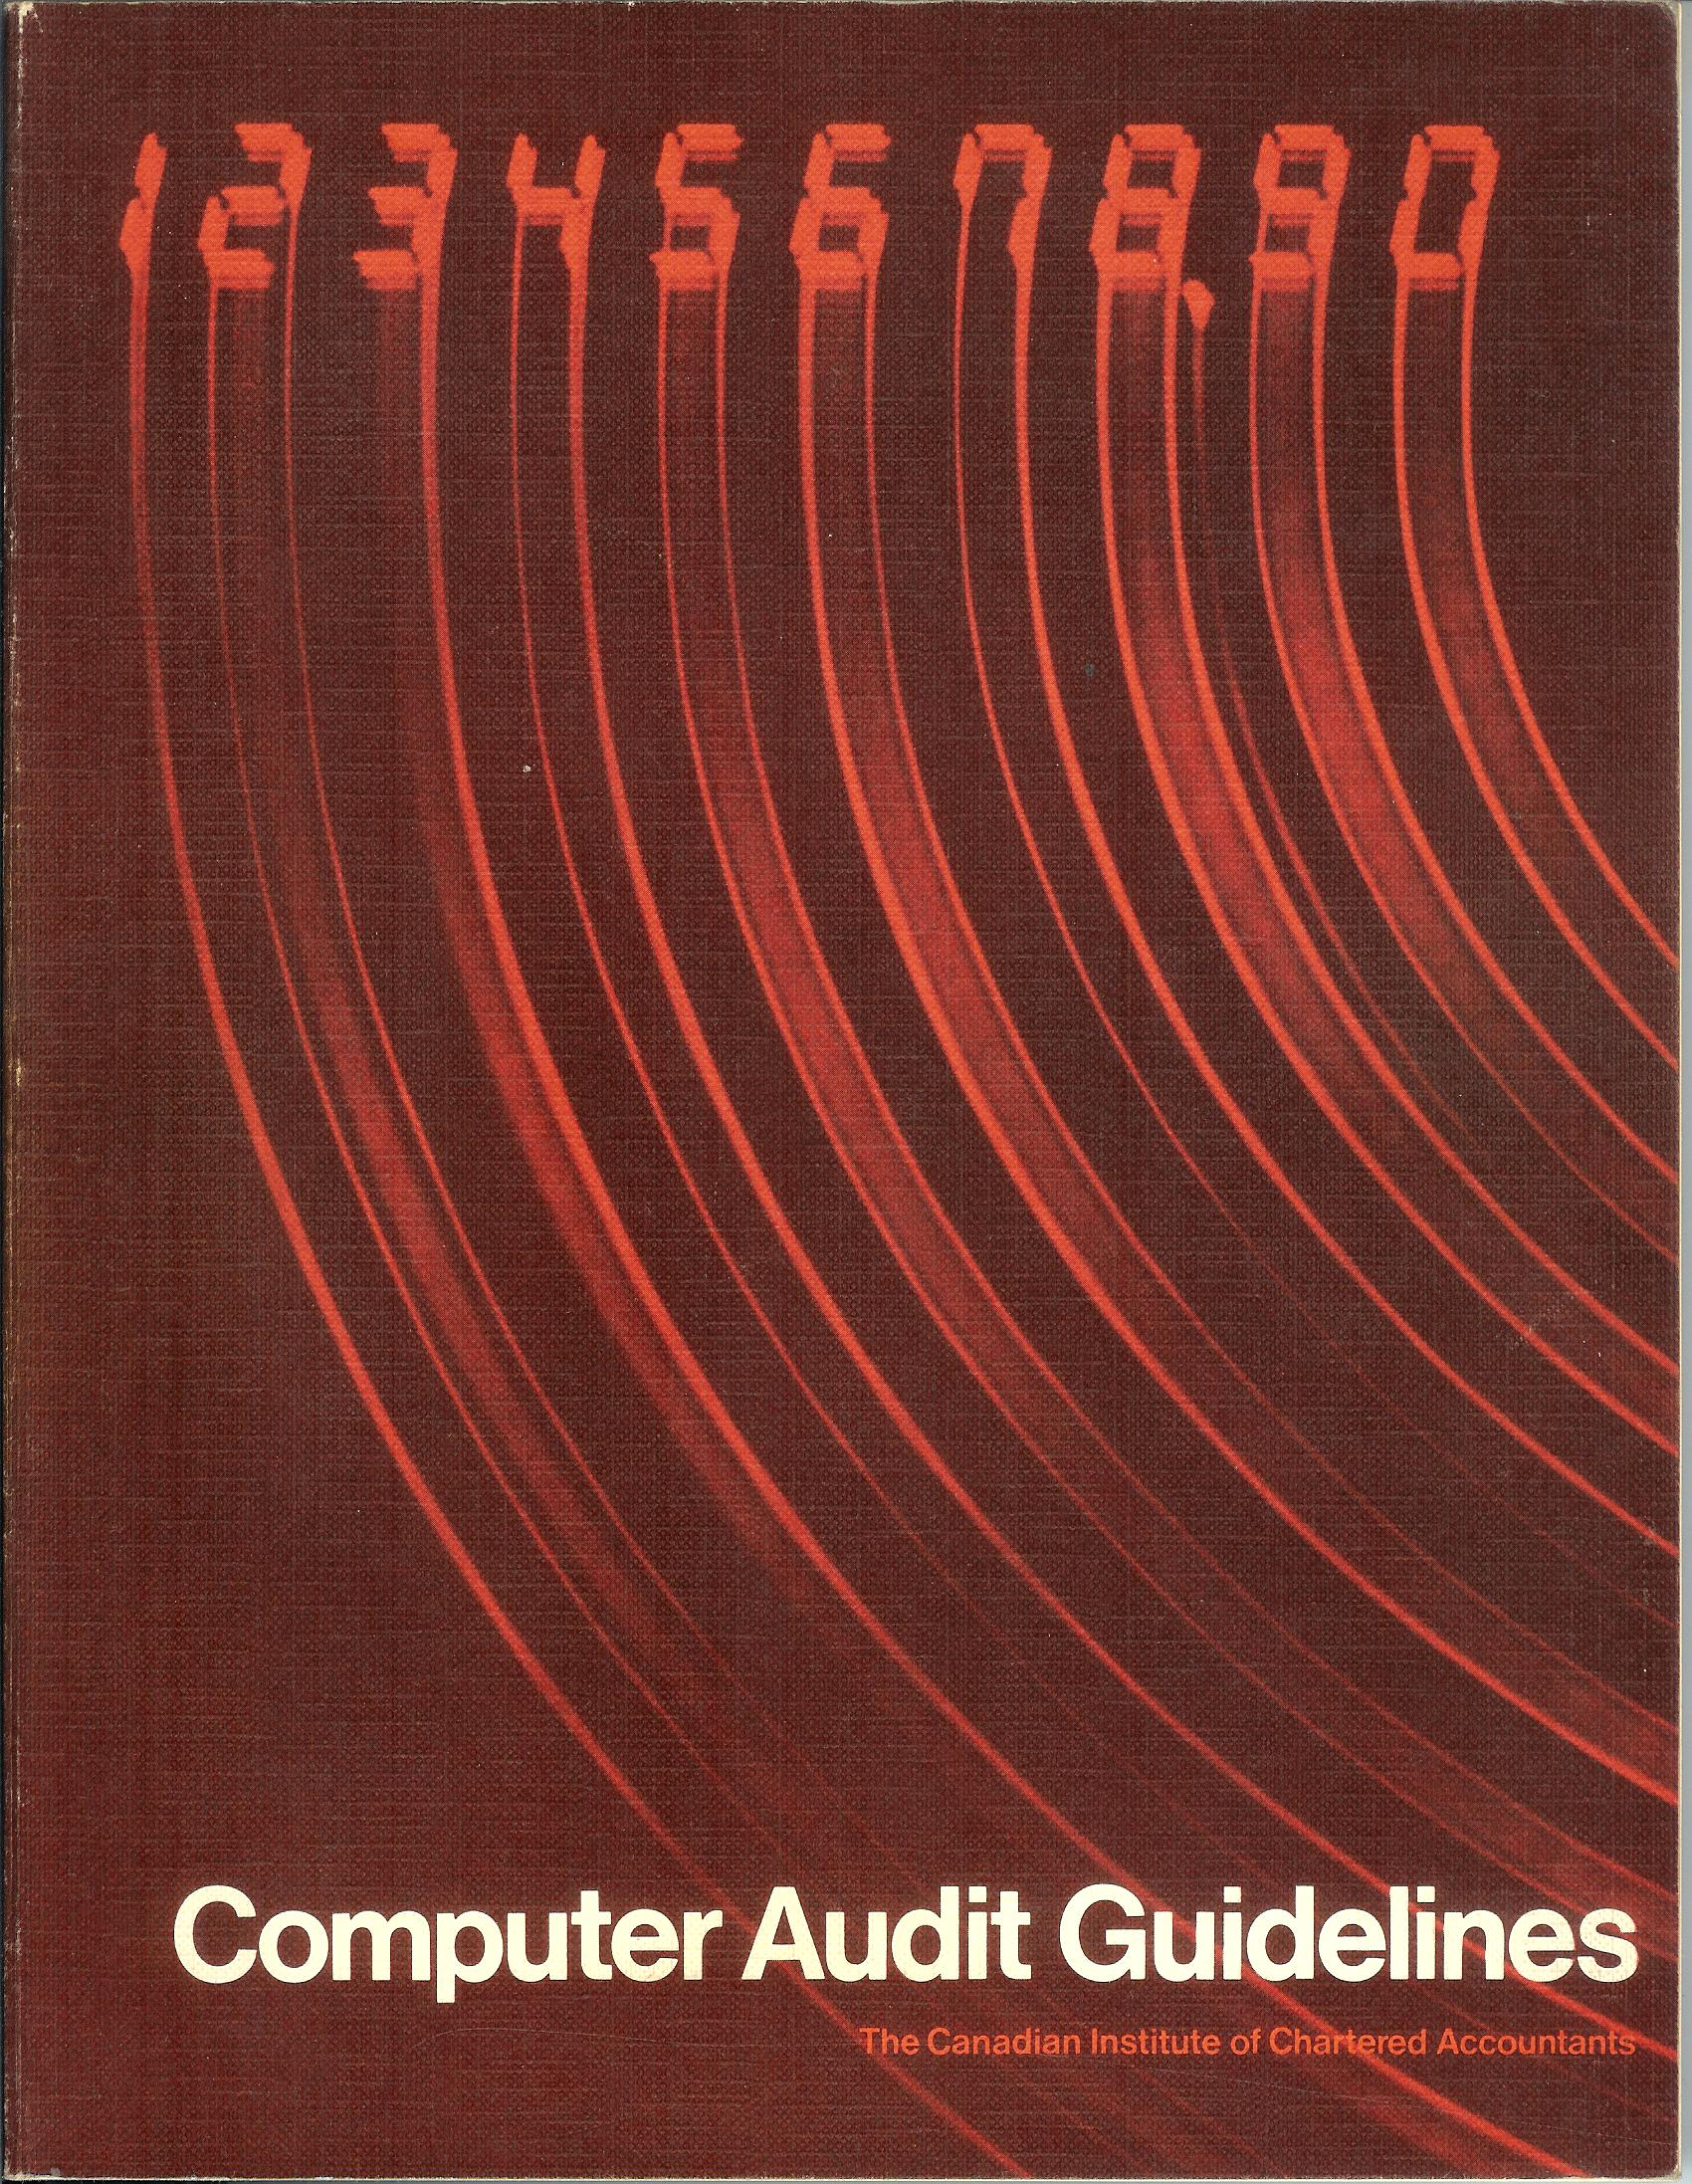 Computer control and audit guidelines